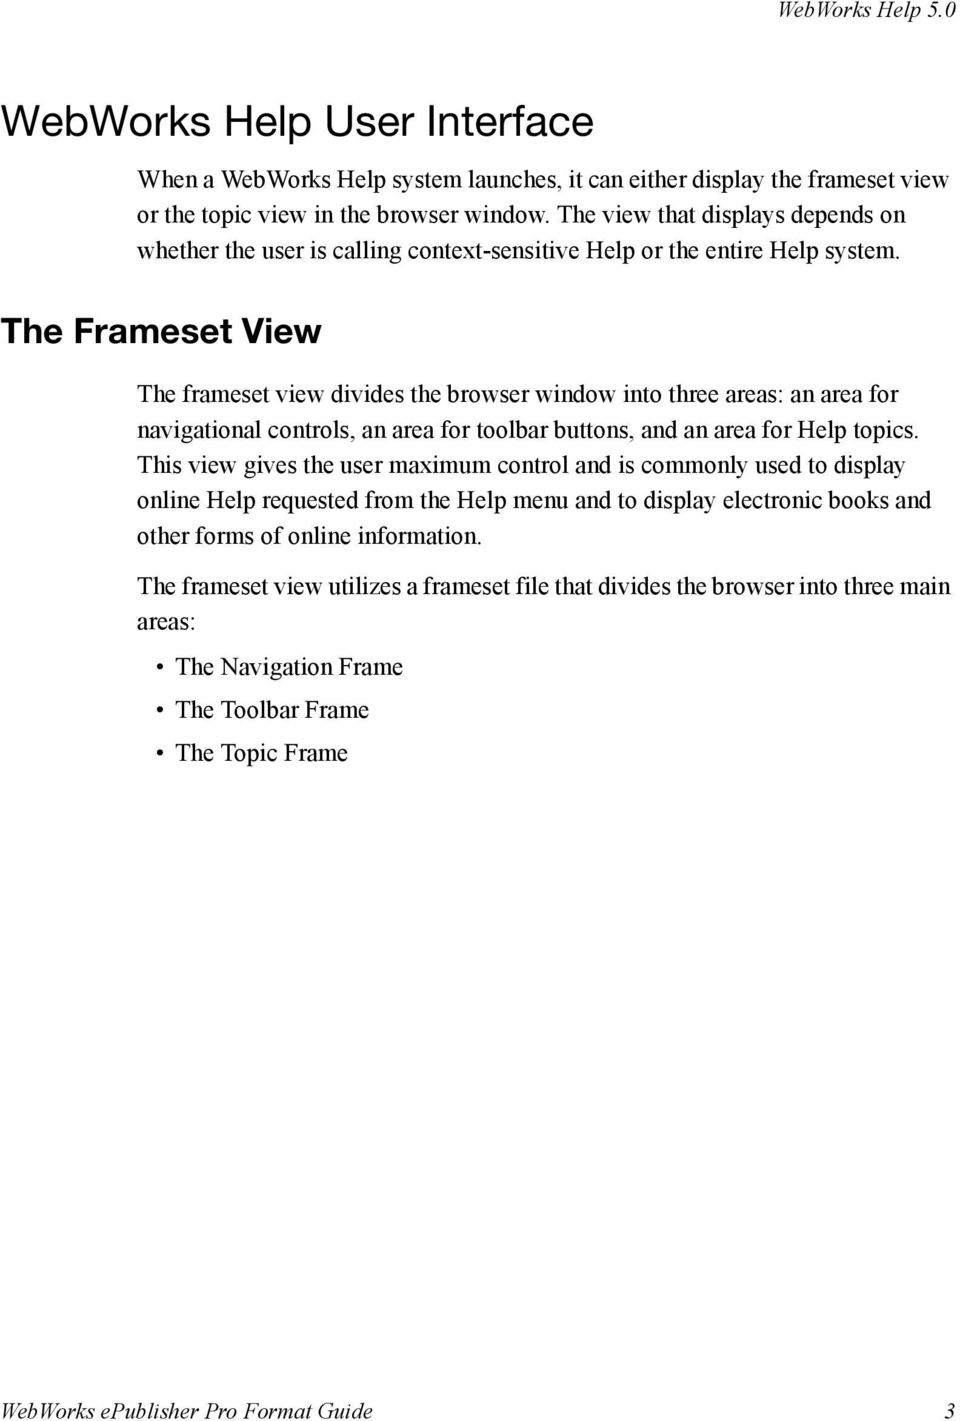 The Frameset View The frameset view divides the browser window into three areas: an area for navigational controls, an area for toolbar buttons, and an area for Help topics.